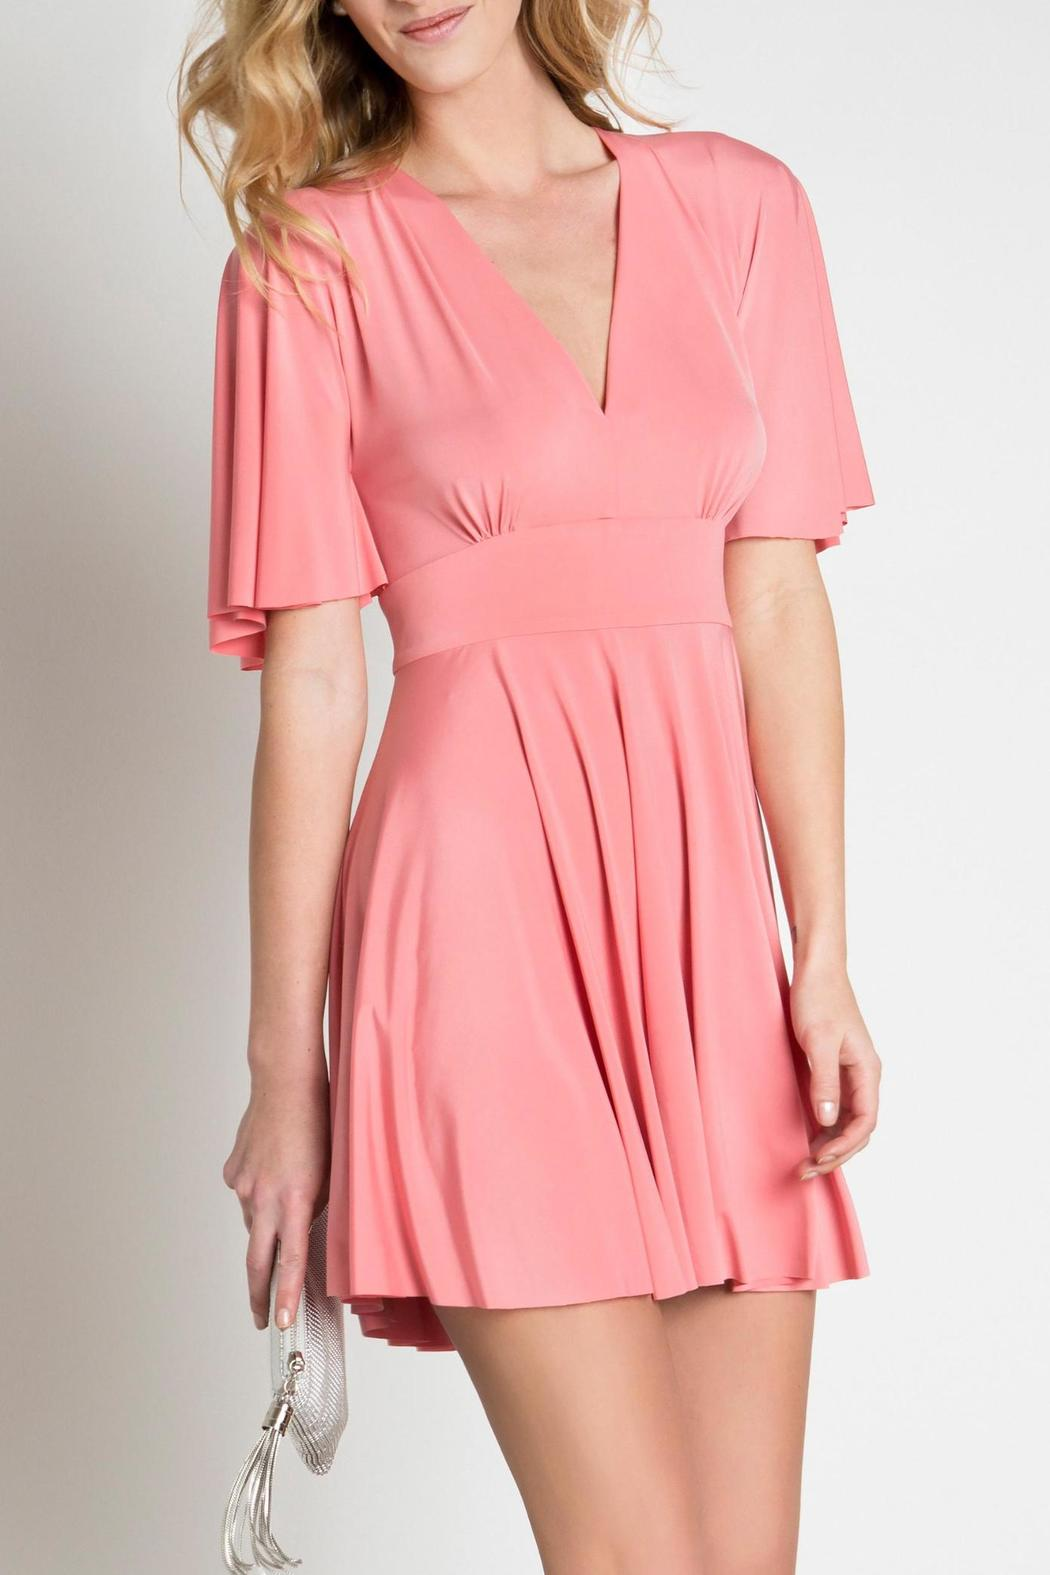 Urban Touch Coral Skater Dress - Main Image